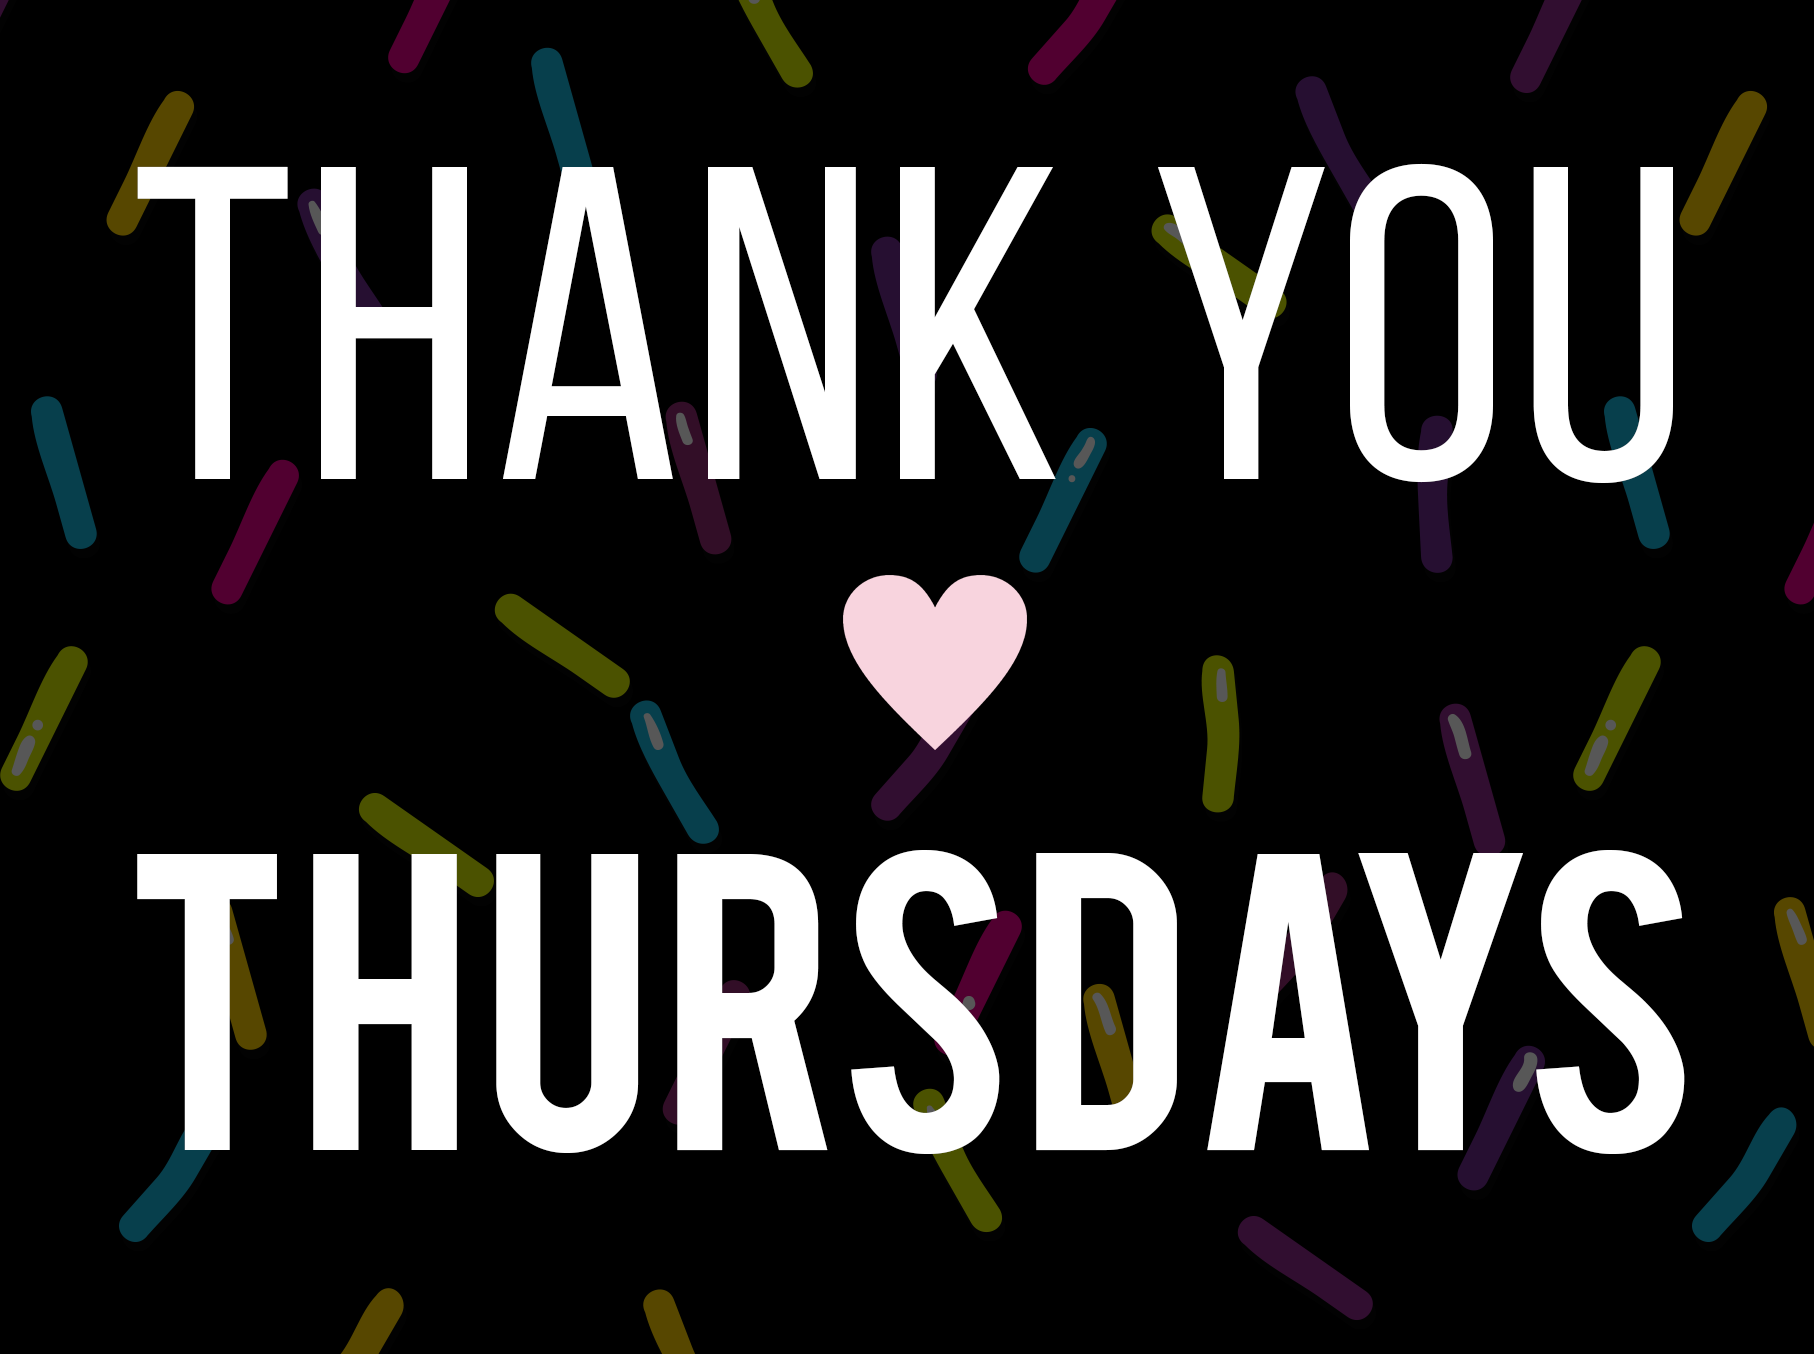 THANK YOU THURSDAY - 20% off for active and retired military, 1st responders, healthcare & teachers (with ID)